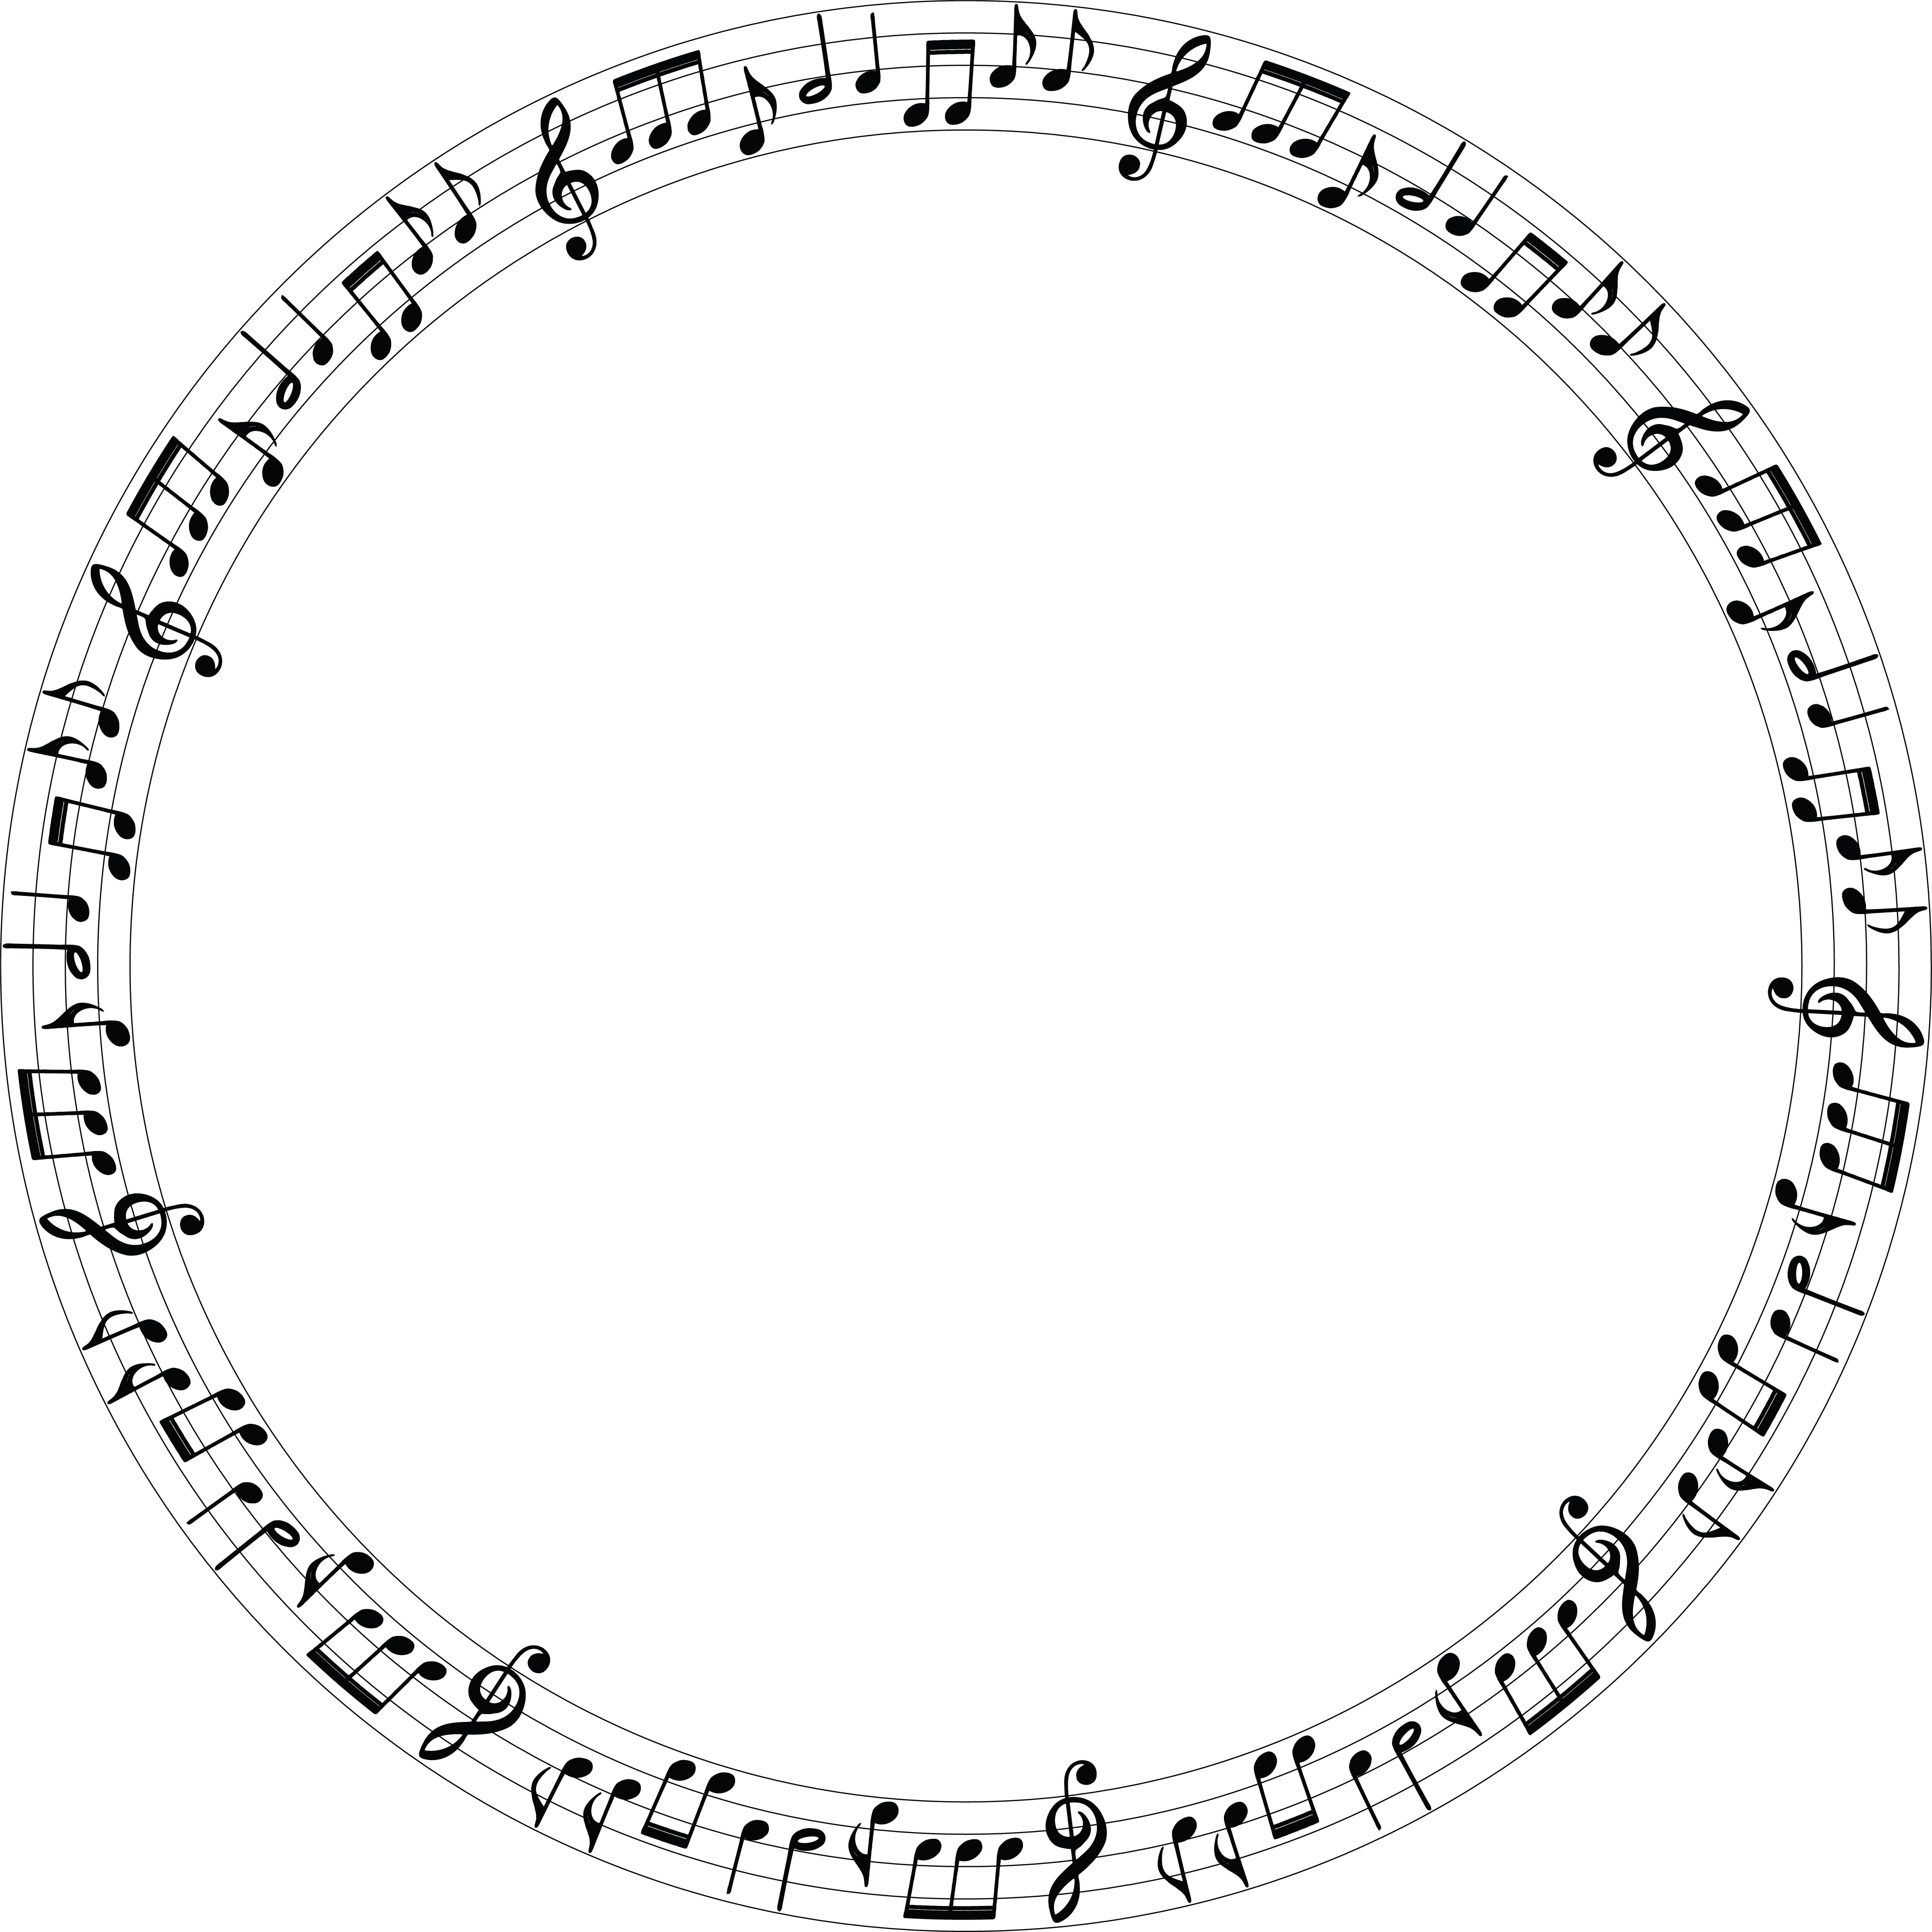 Free Clipart Of A music note frame